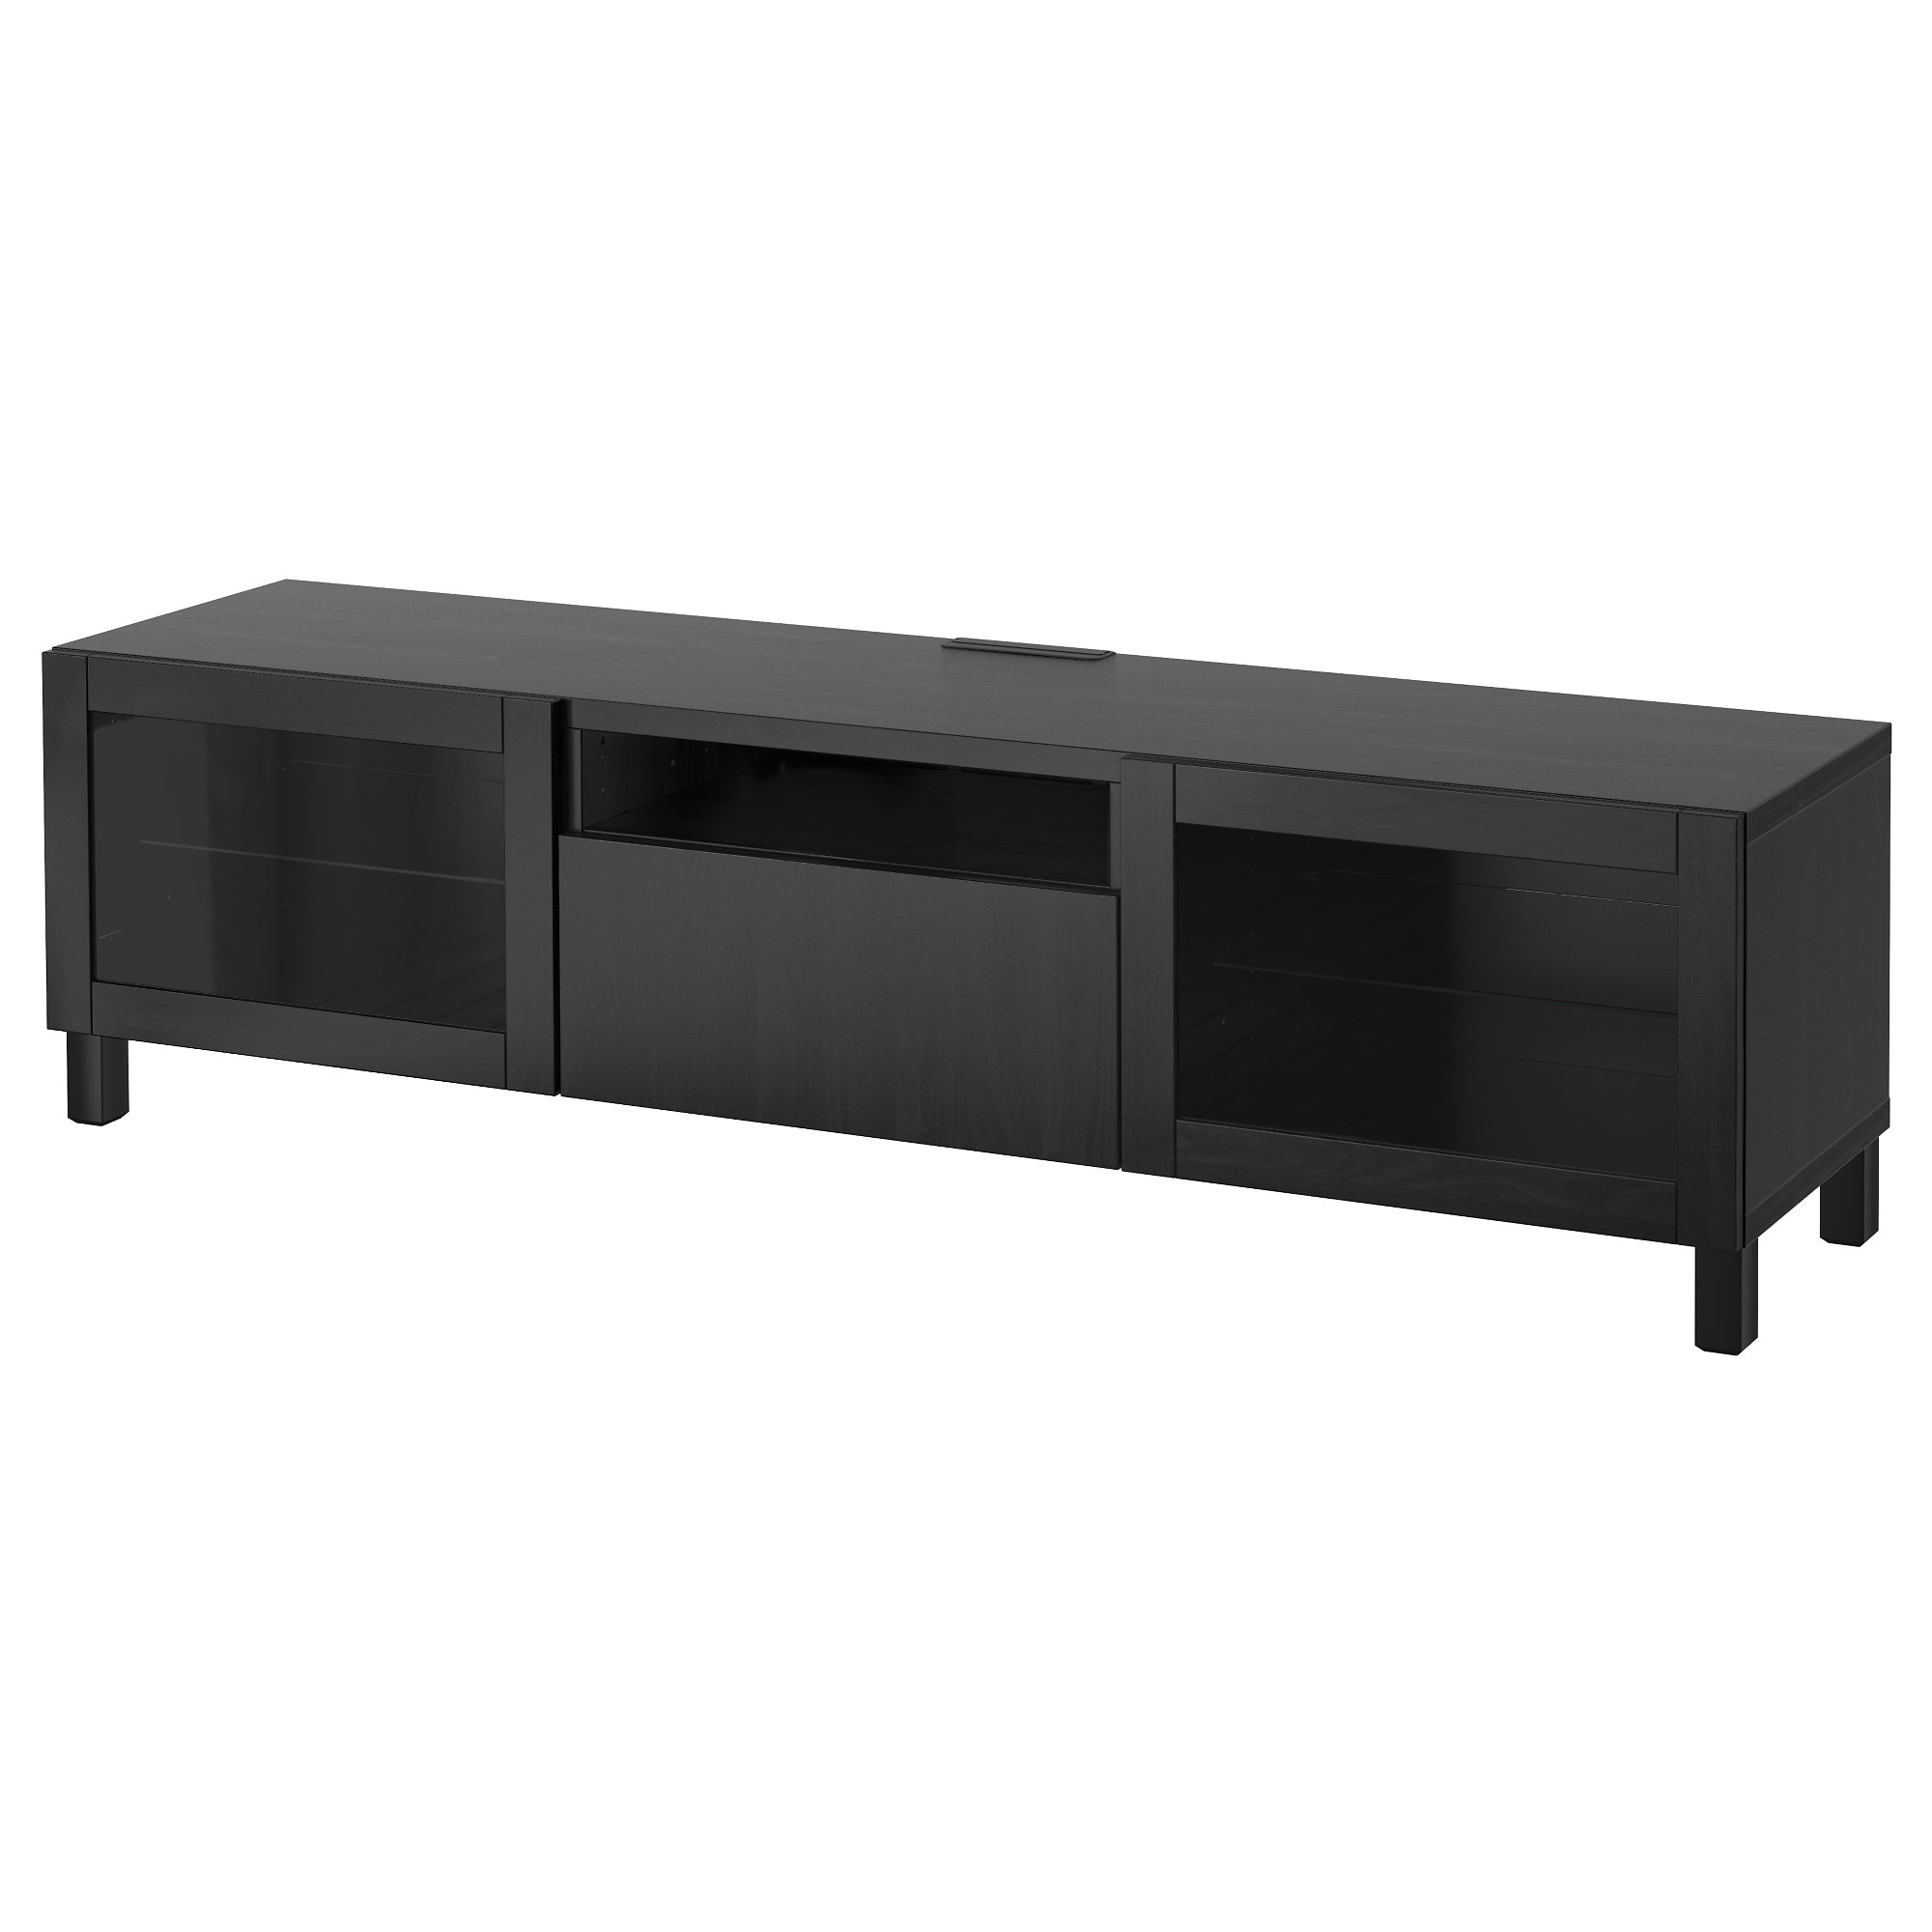 Best Tv Bench Black Brown Selsviken High Gloss Black Clear  # Meuble Tv Ferme Ikea